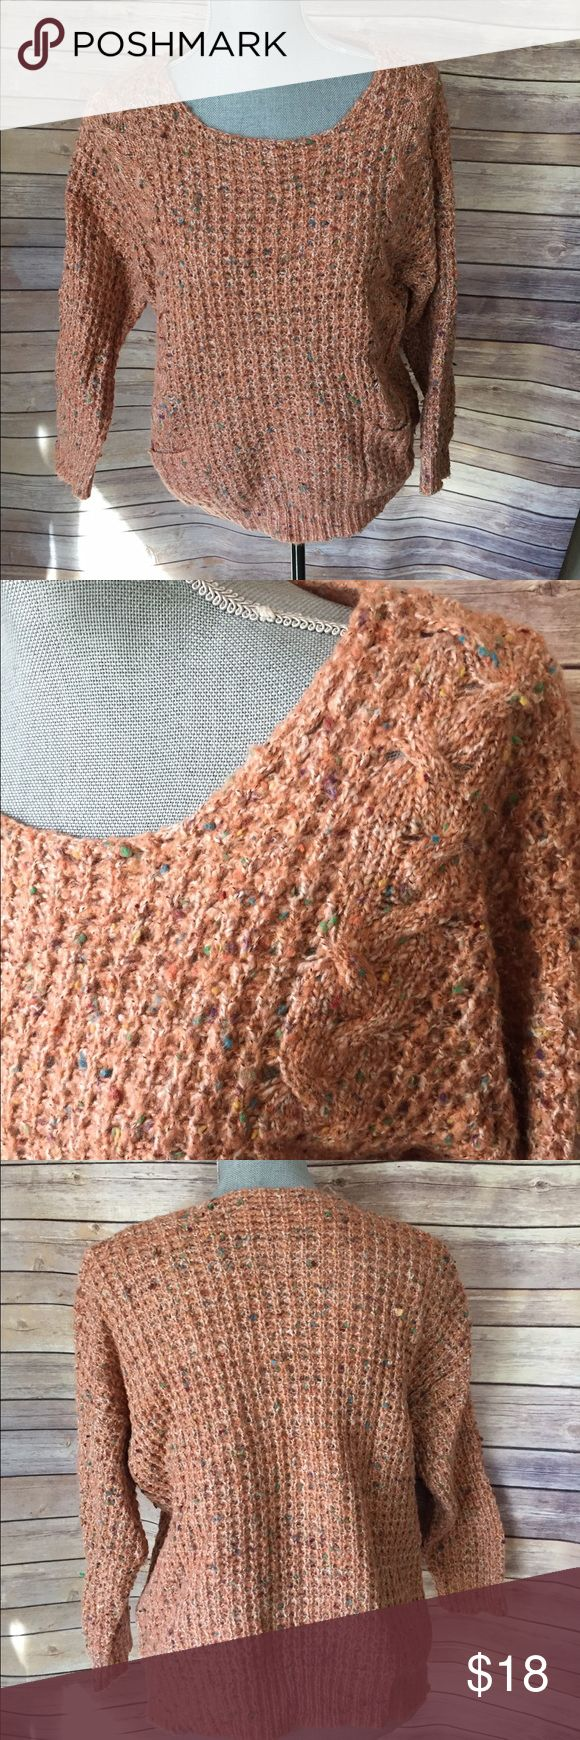 Peach and multi-color knit sweater with pockets This is an adorable sweater you can wear with jeans or a cute pencil skirt to work. Never worn but no tags including inside so not sure what size it is bit. Looks like  a small/medium. The dress. Form in the pic is def a small. Sweaters Crew & Scoop Necks